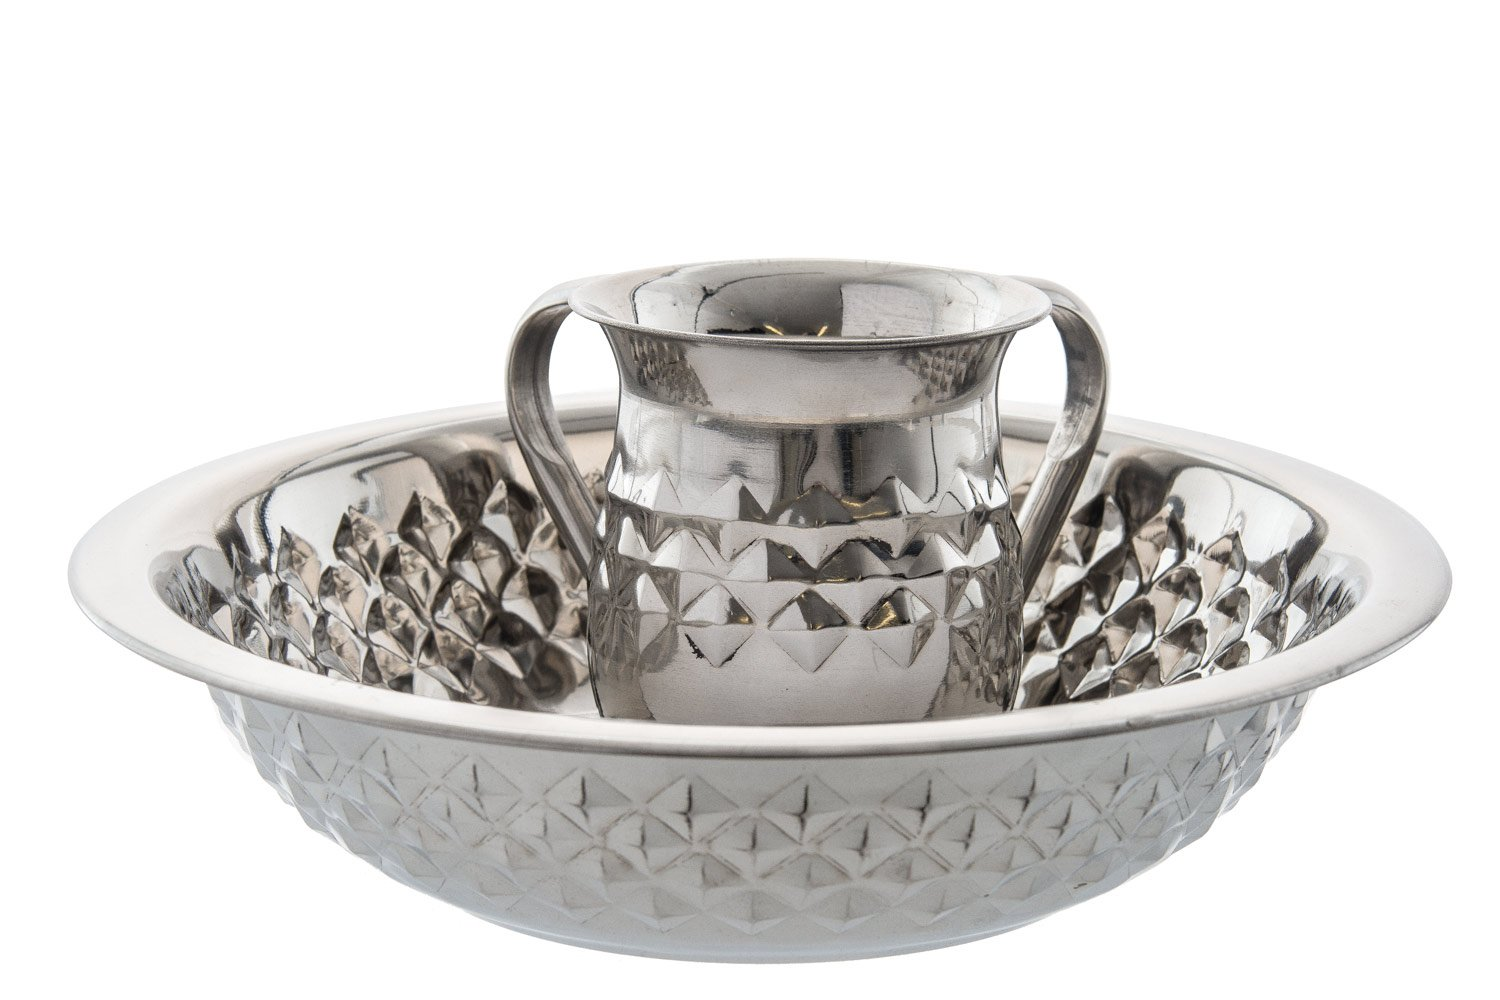 Stainless Steel Diamond Design Netilat Yadayim Wash Cup and Bowl Set